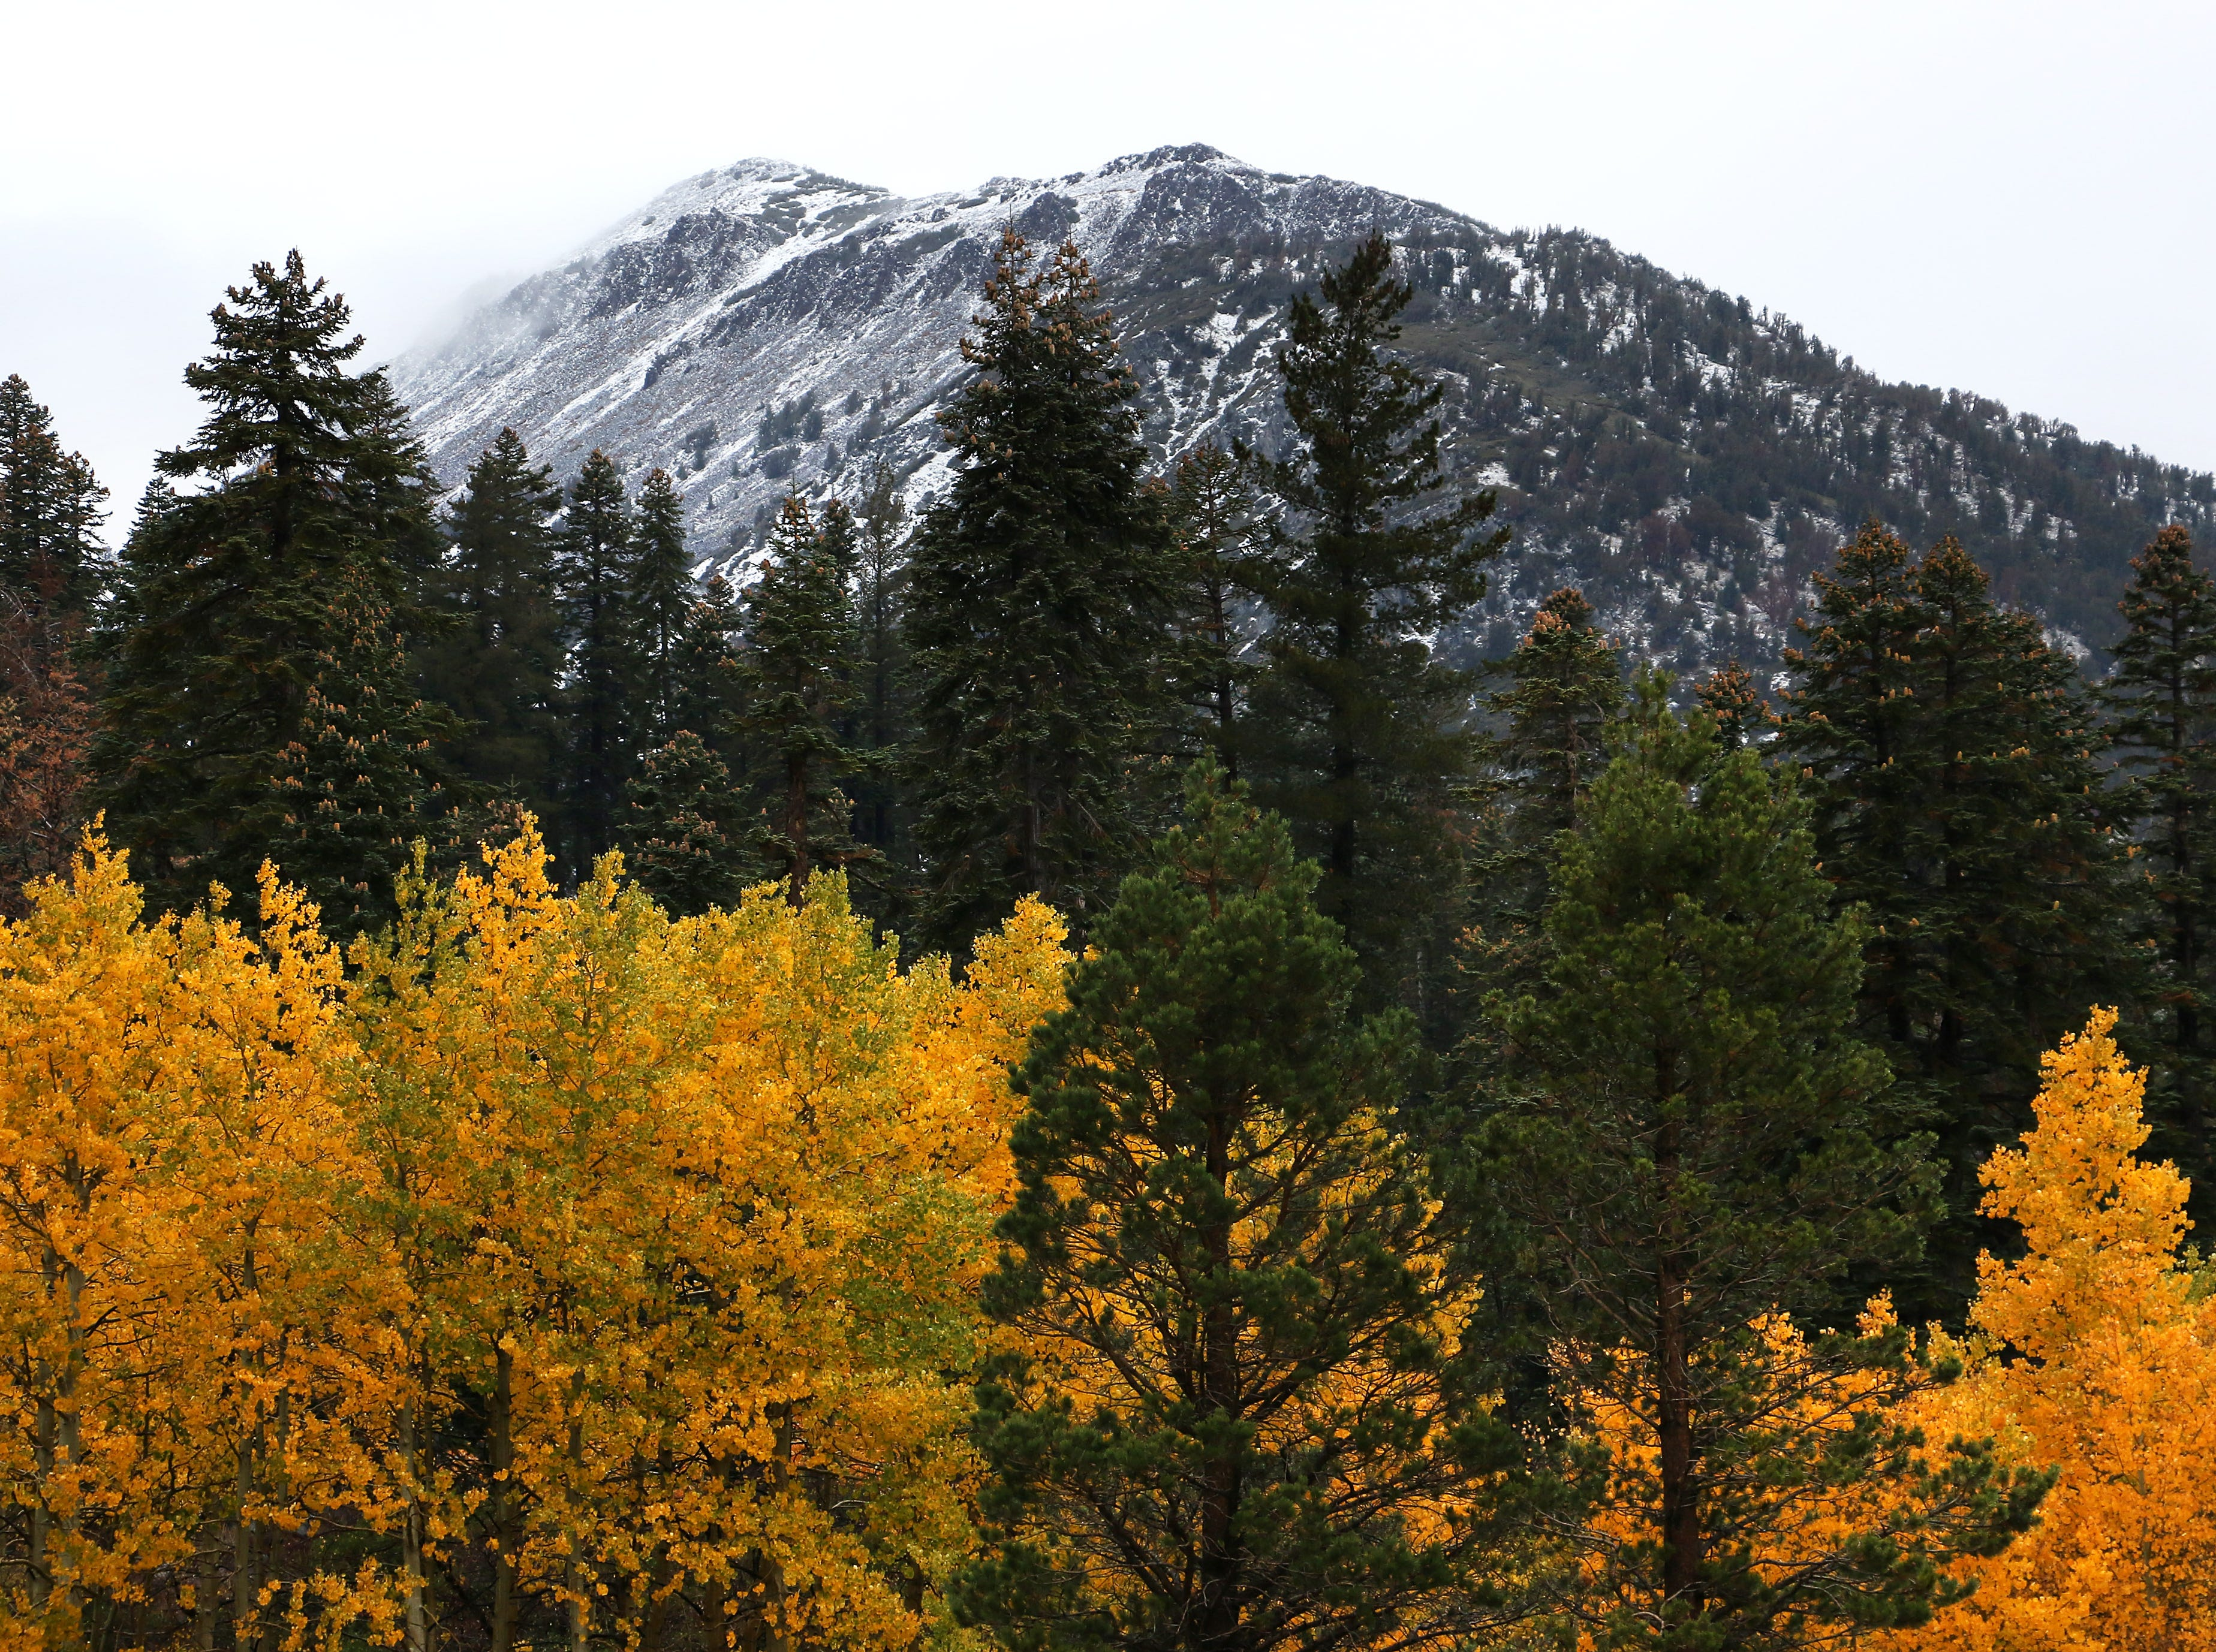 Fall colors and a dusting of new snow are seen on Mt. Rose near Reno on Oct. 3, 2018.